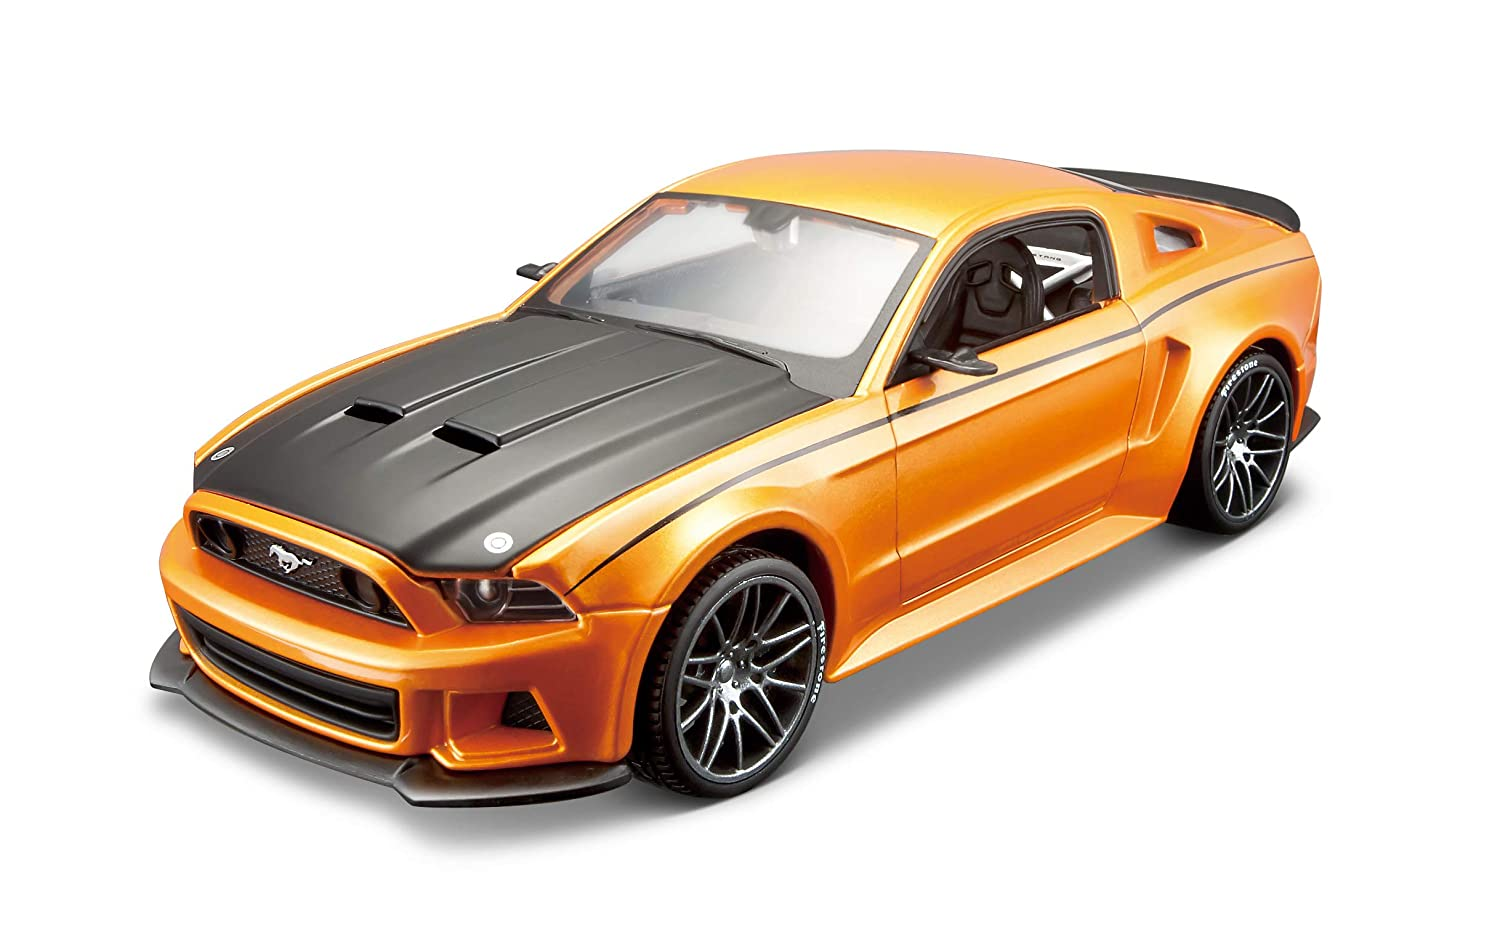 Maisto Domestic 39127 Maisto 1:24 Scale Assembly Line 2014 Ford Mustang Street Racer Diecast Model Kit Colors May Vary